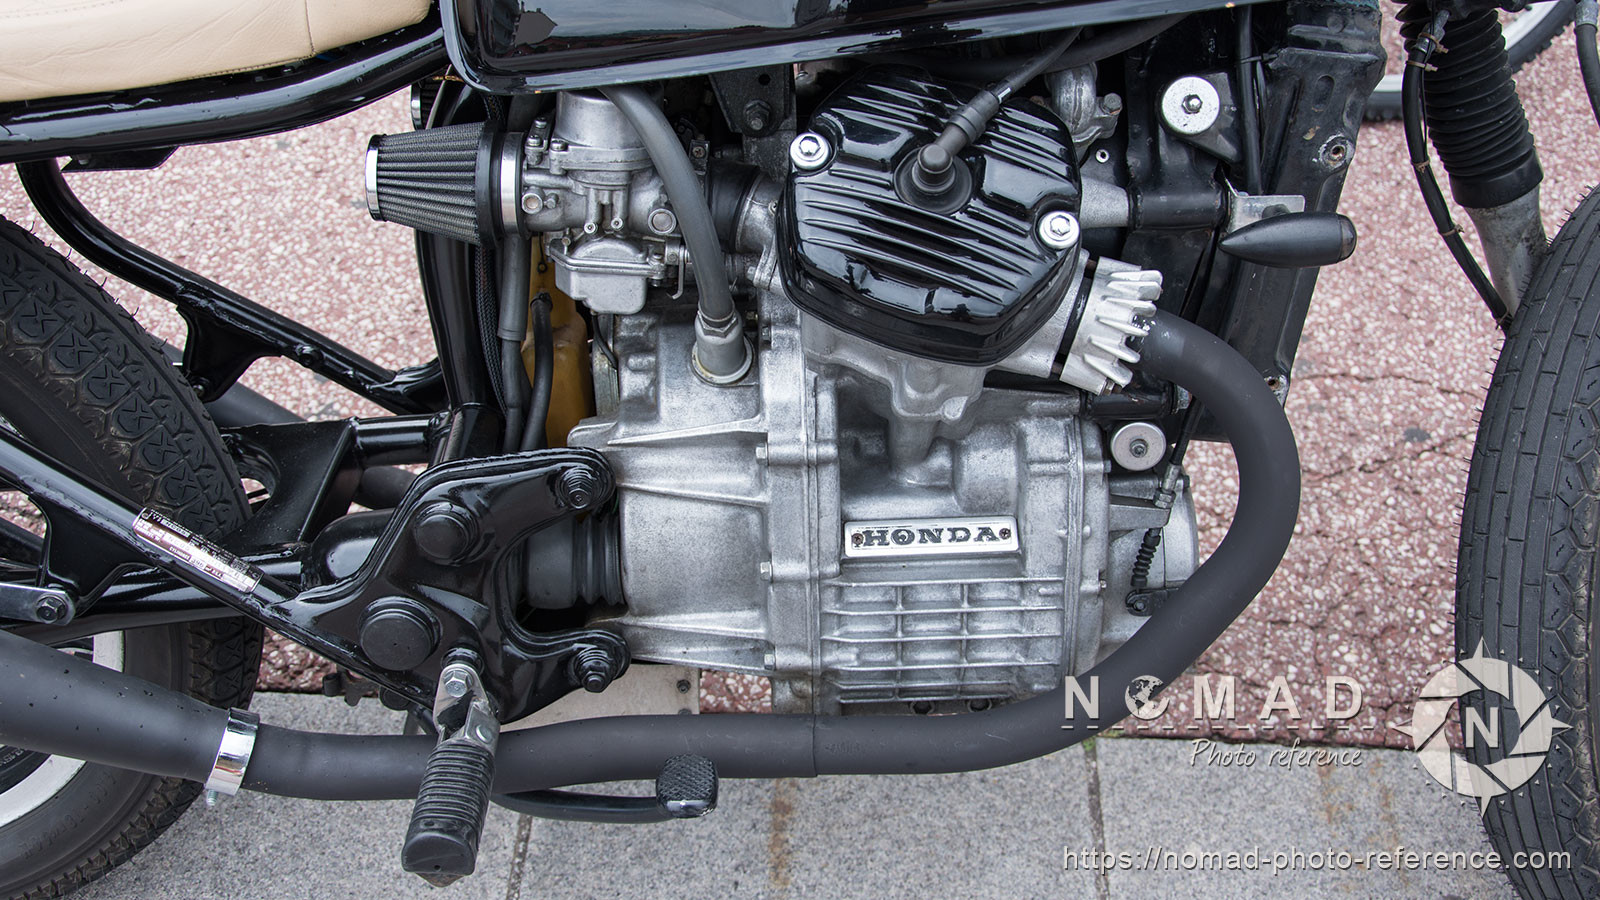 Photo reference pack motorbikes engines 13